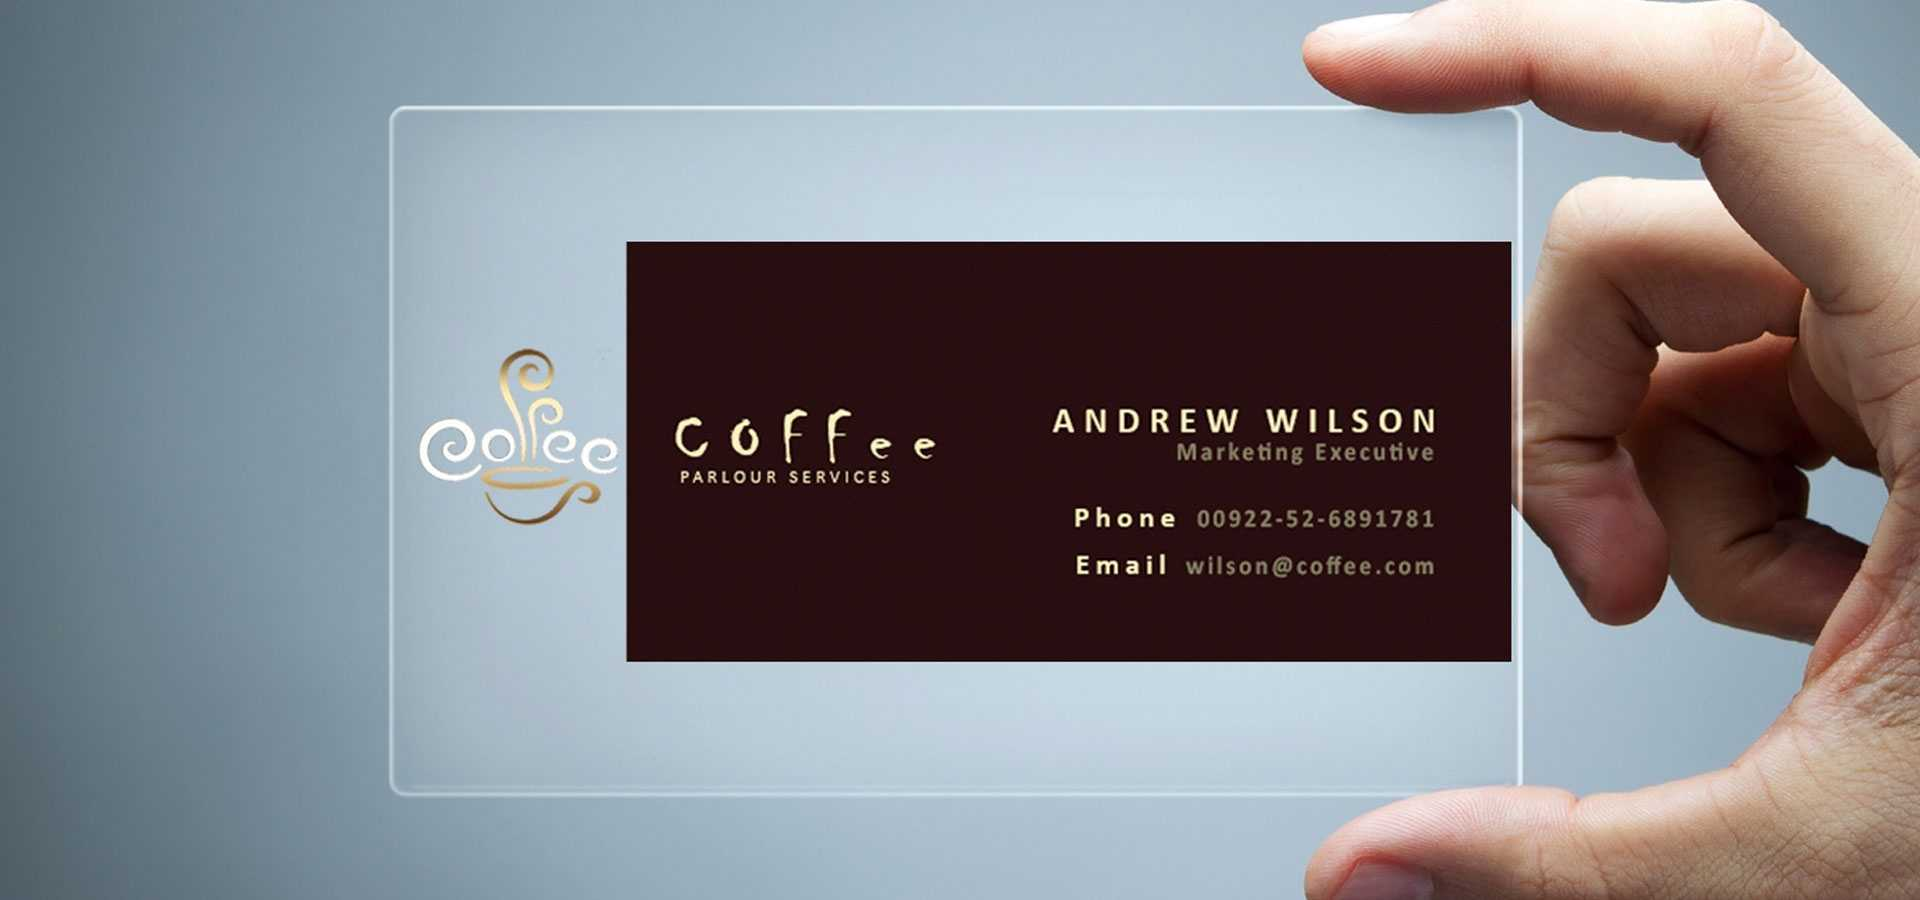 26+ Transparent Business Card Templates - Illustrator, Ms With Regard To Microsoft Office Business Card Template